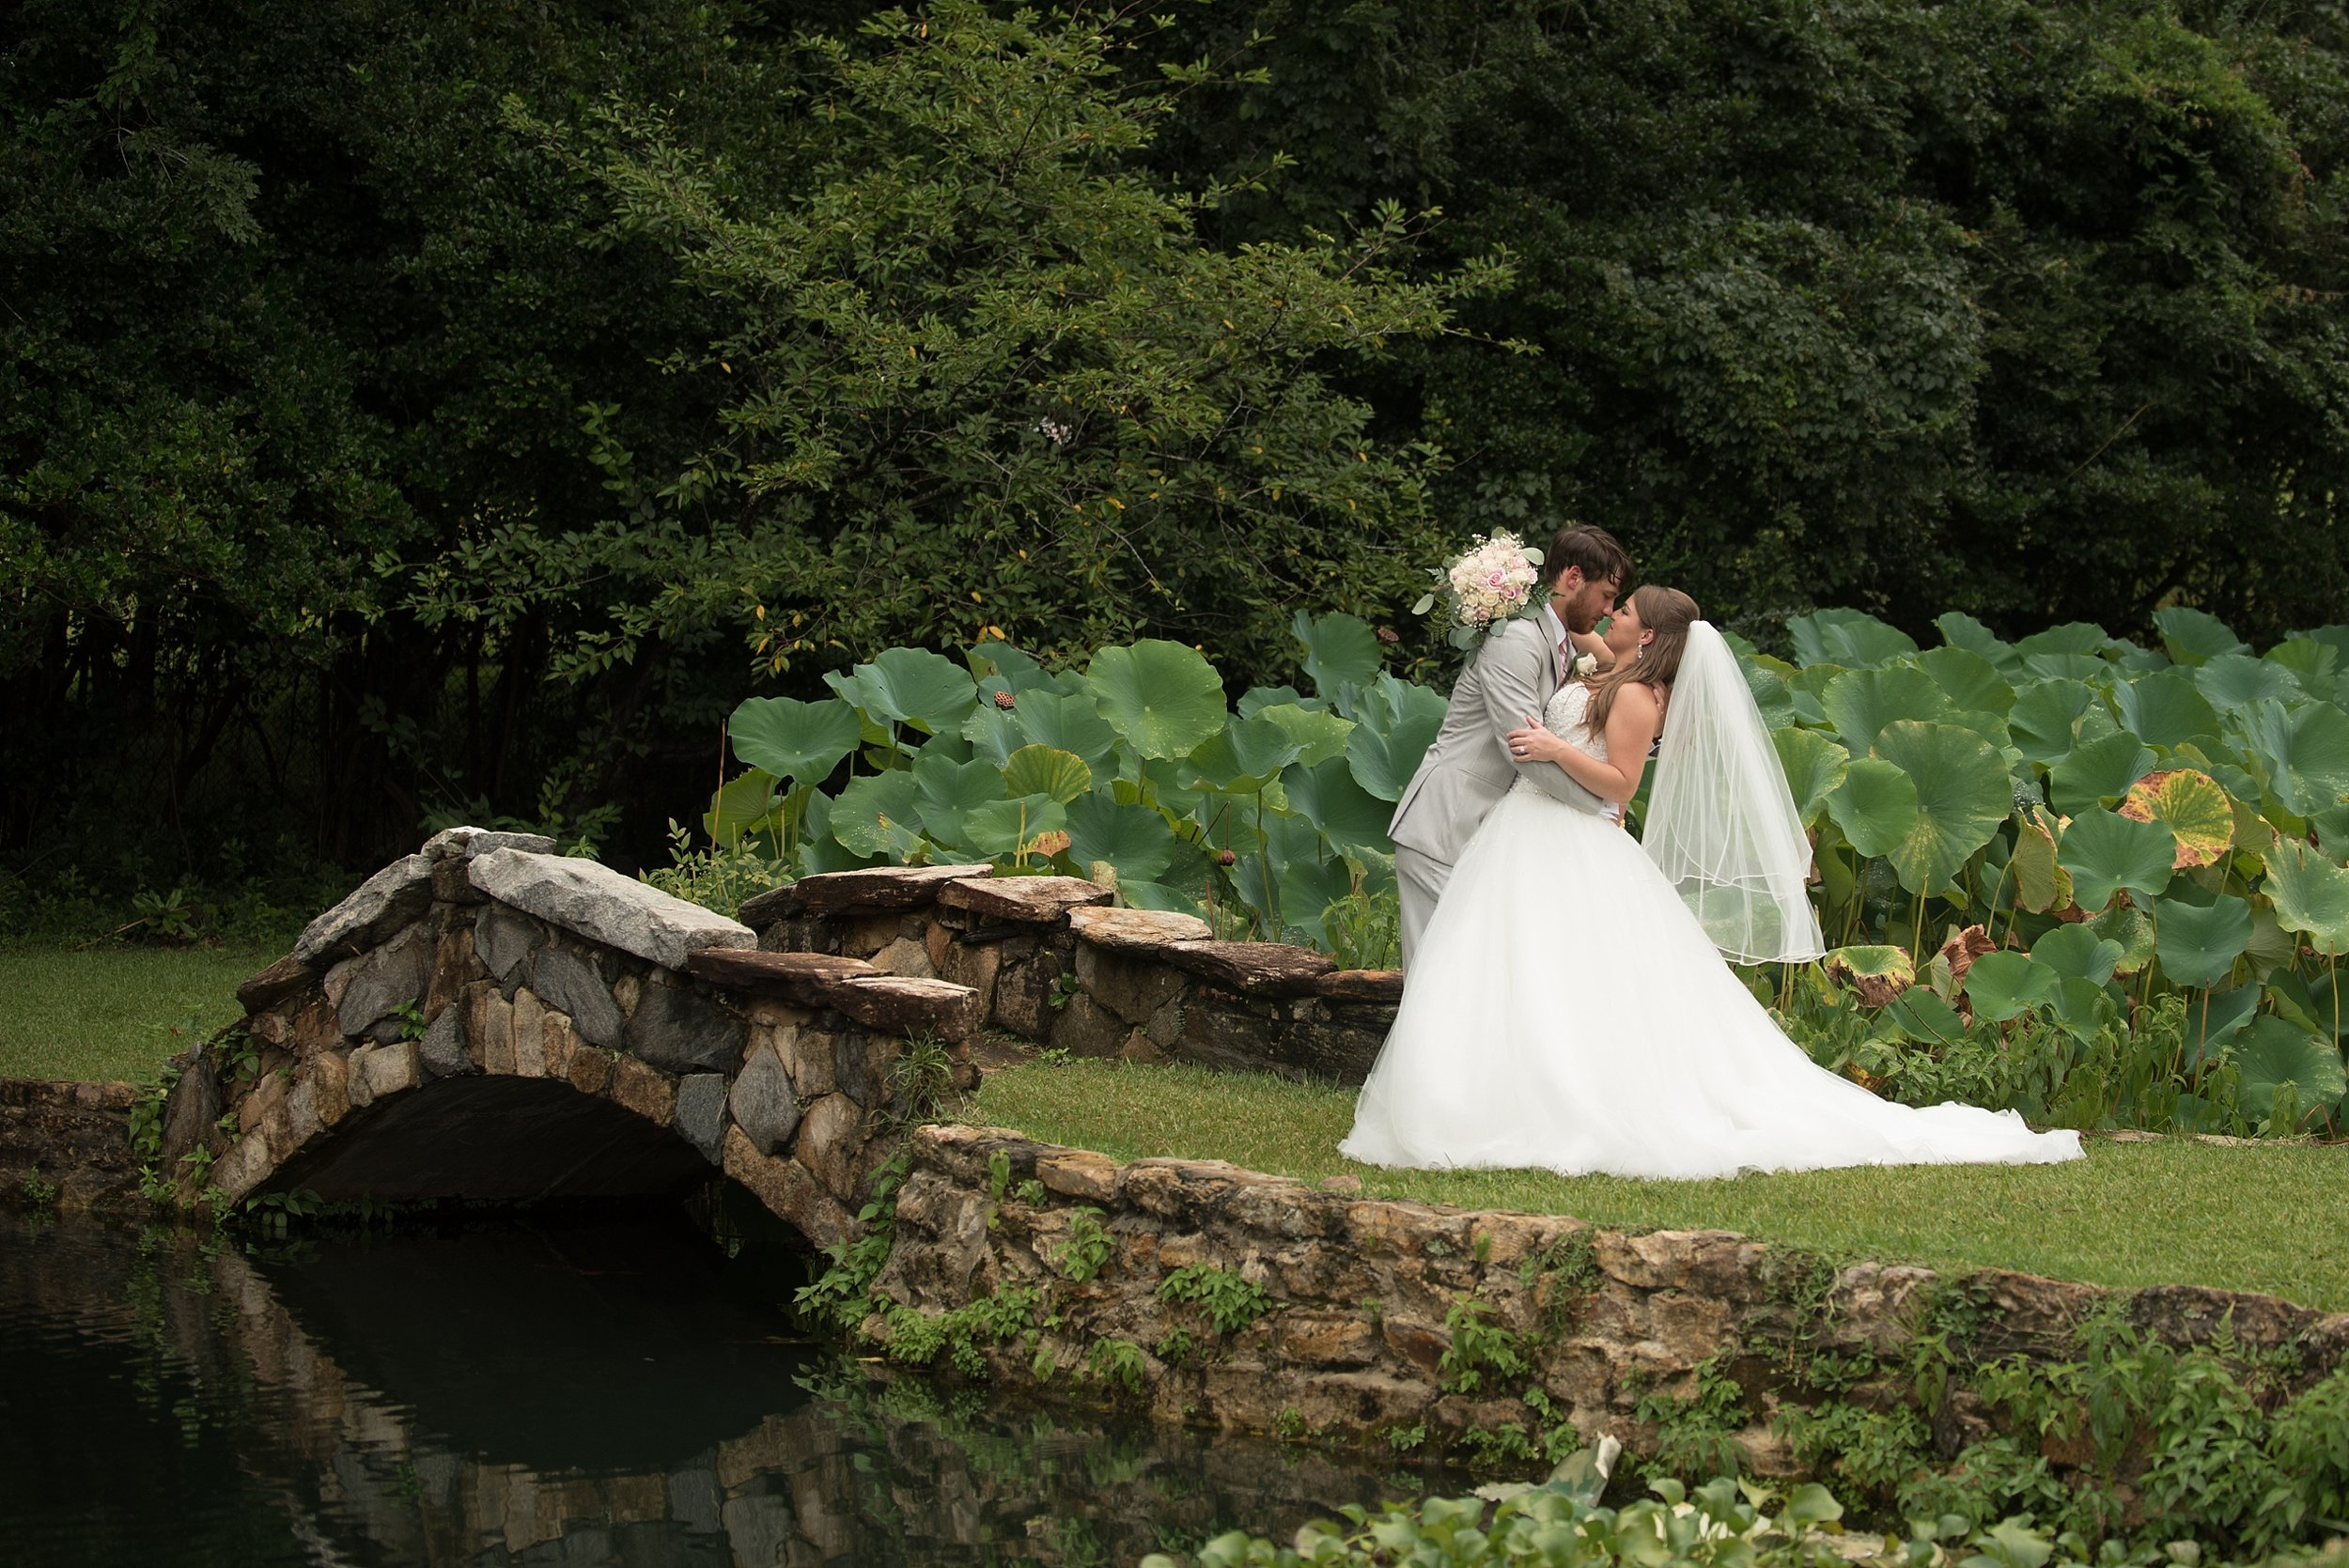 Groom dips bride and gives her a kiss beside a stone bridge